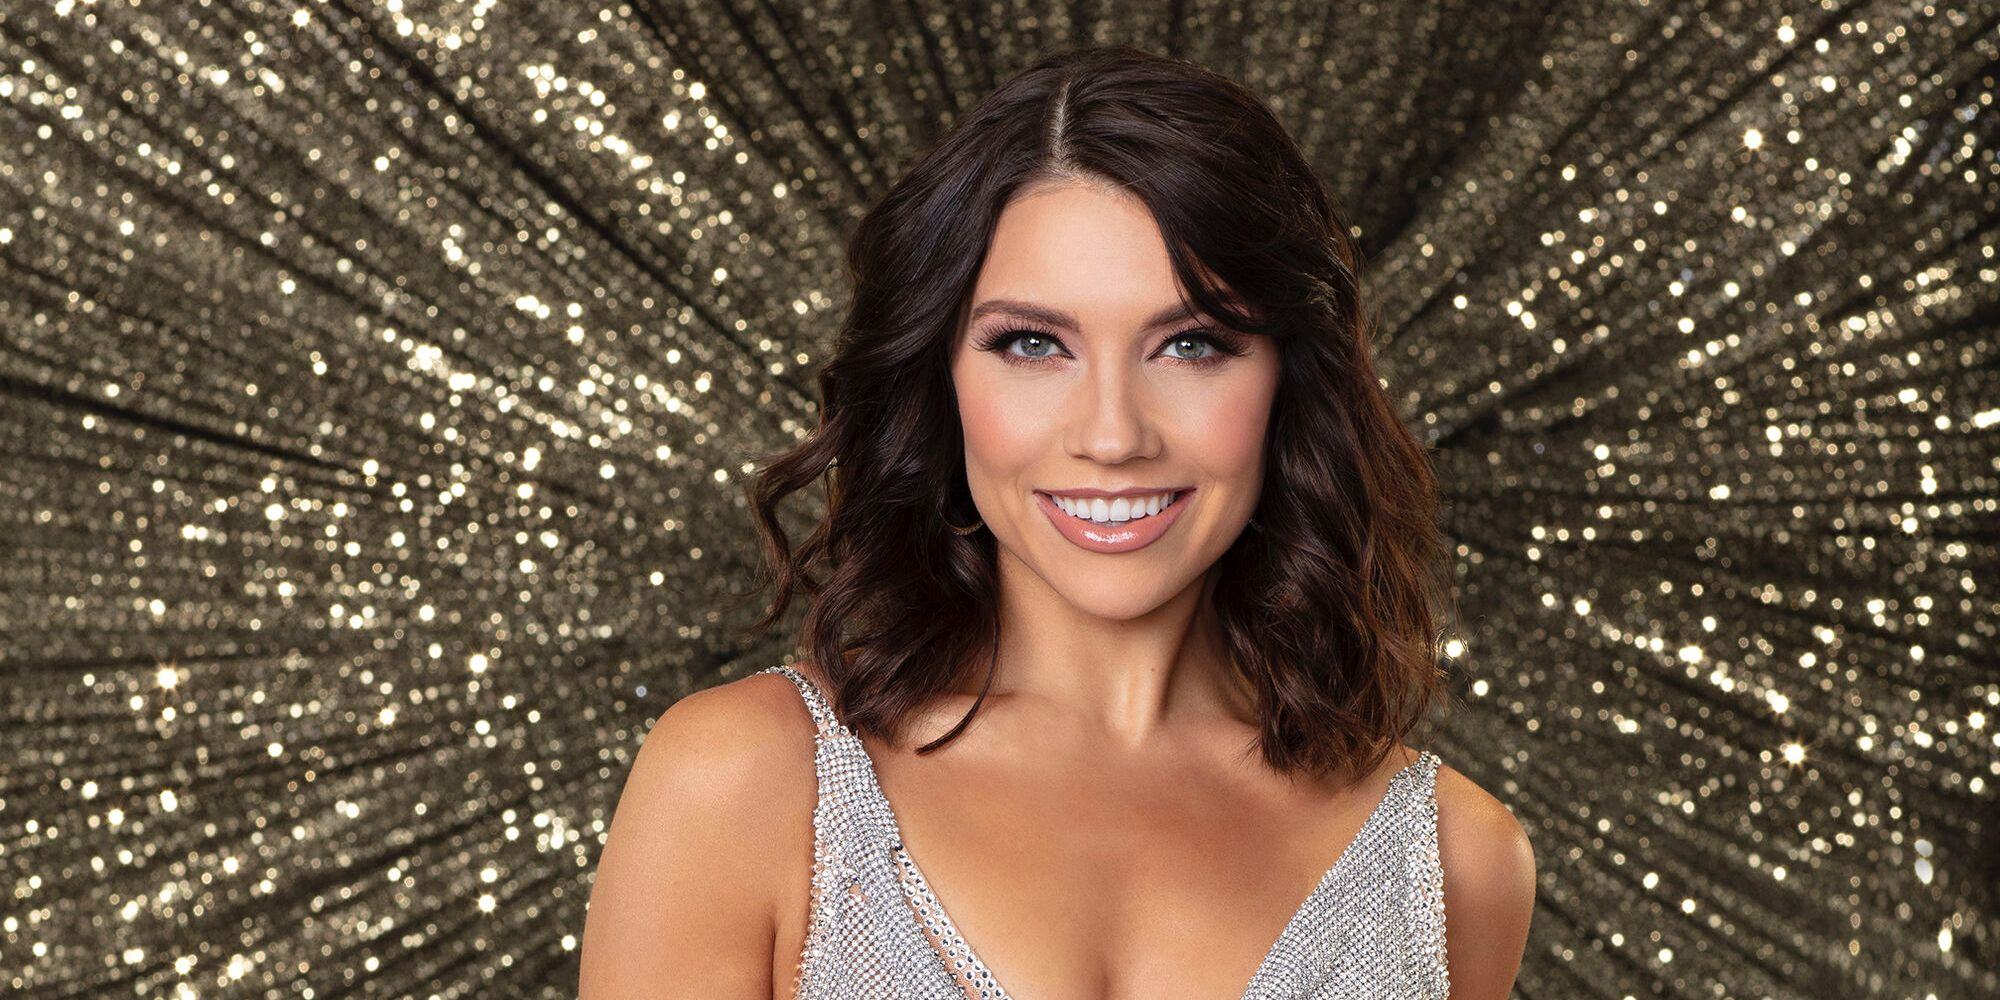 Jenna Johnson Says 'Brain Positivity' Helped Her With Insecurities